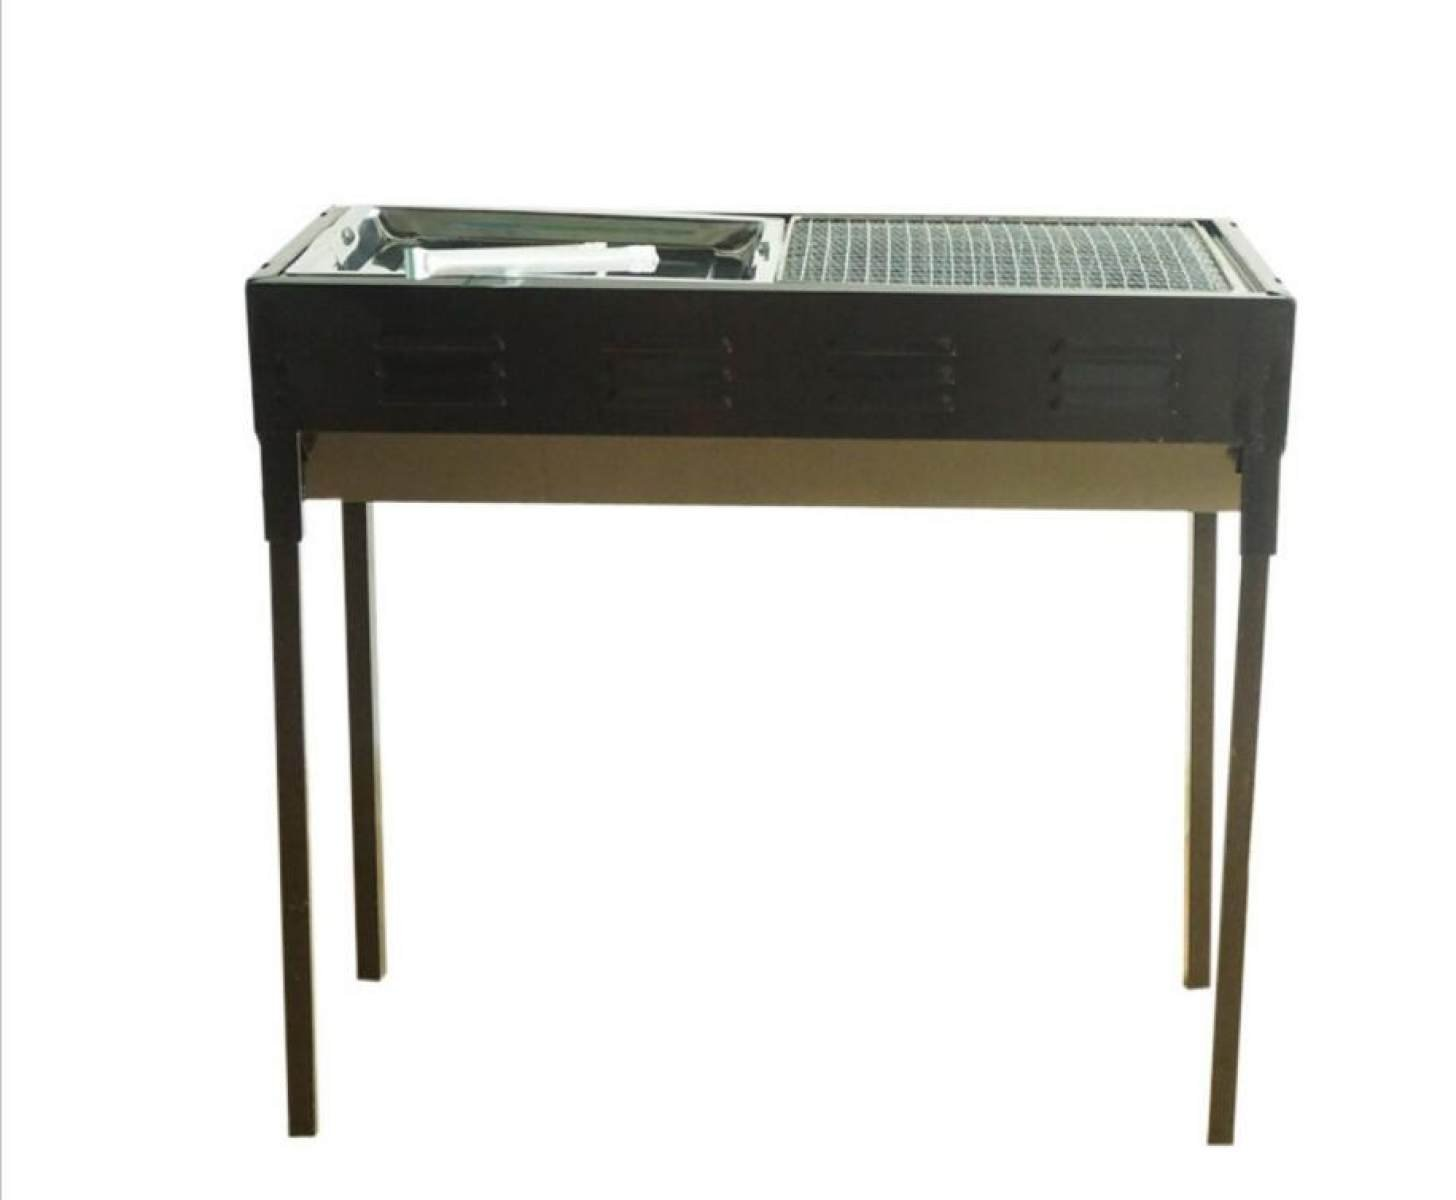 Korean Barbecue Grill Outdoor Barbecue Grill Große Barbecue Pits Große Black Barbecue Pits Black Barbecue Pits